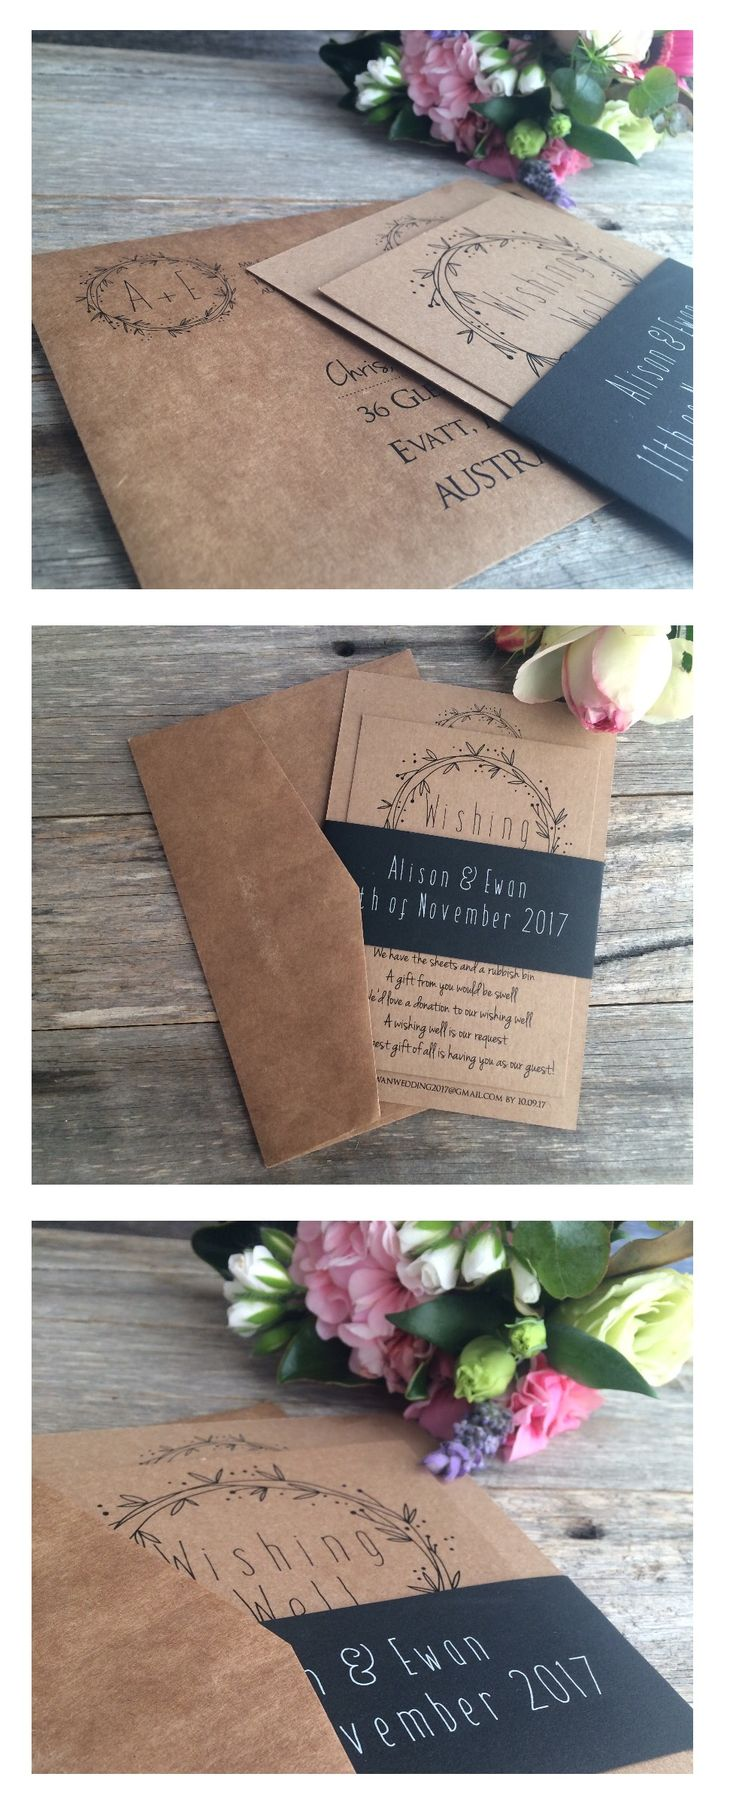 deer hunter wedding invitations%0A Wedding Invites Rustic  Wedding Invitation Suite  Boho Wedding  Wedding  Cards  Wedding Stationery  Belly Bands  Invitations